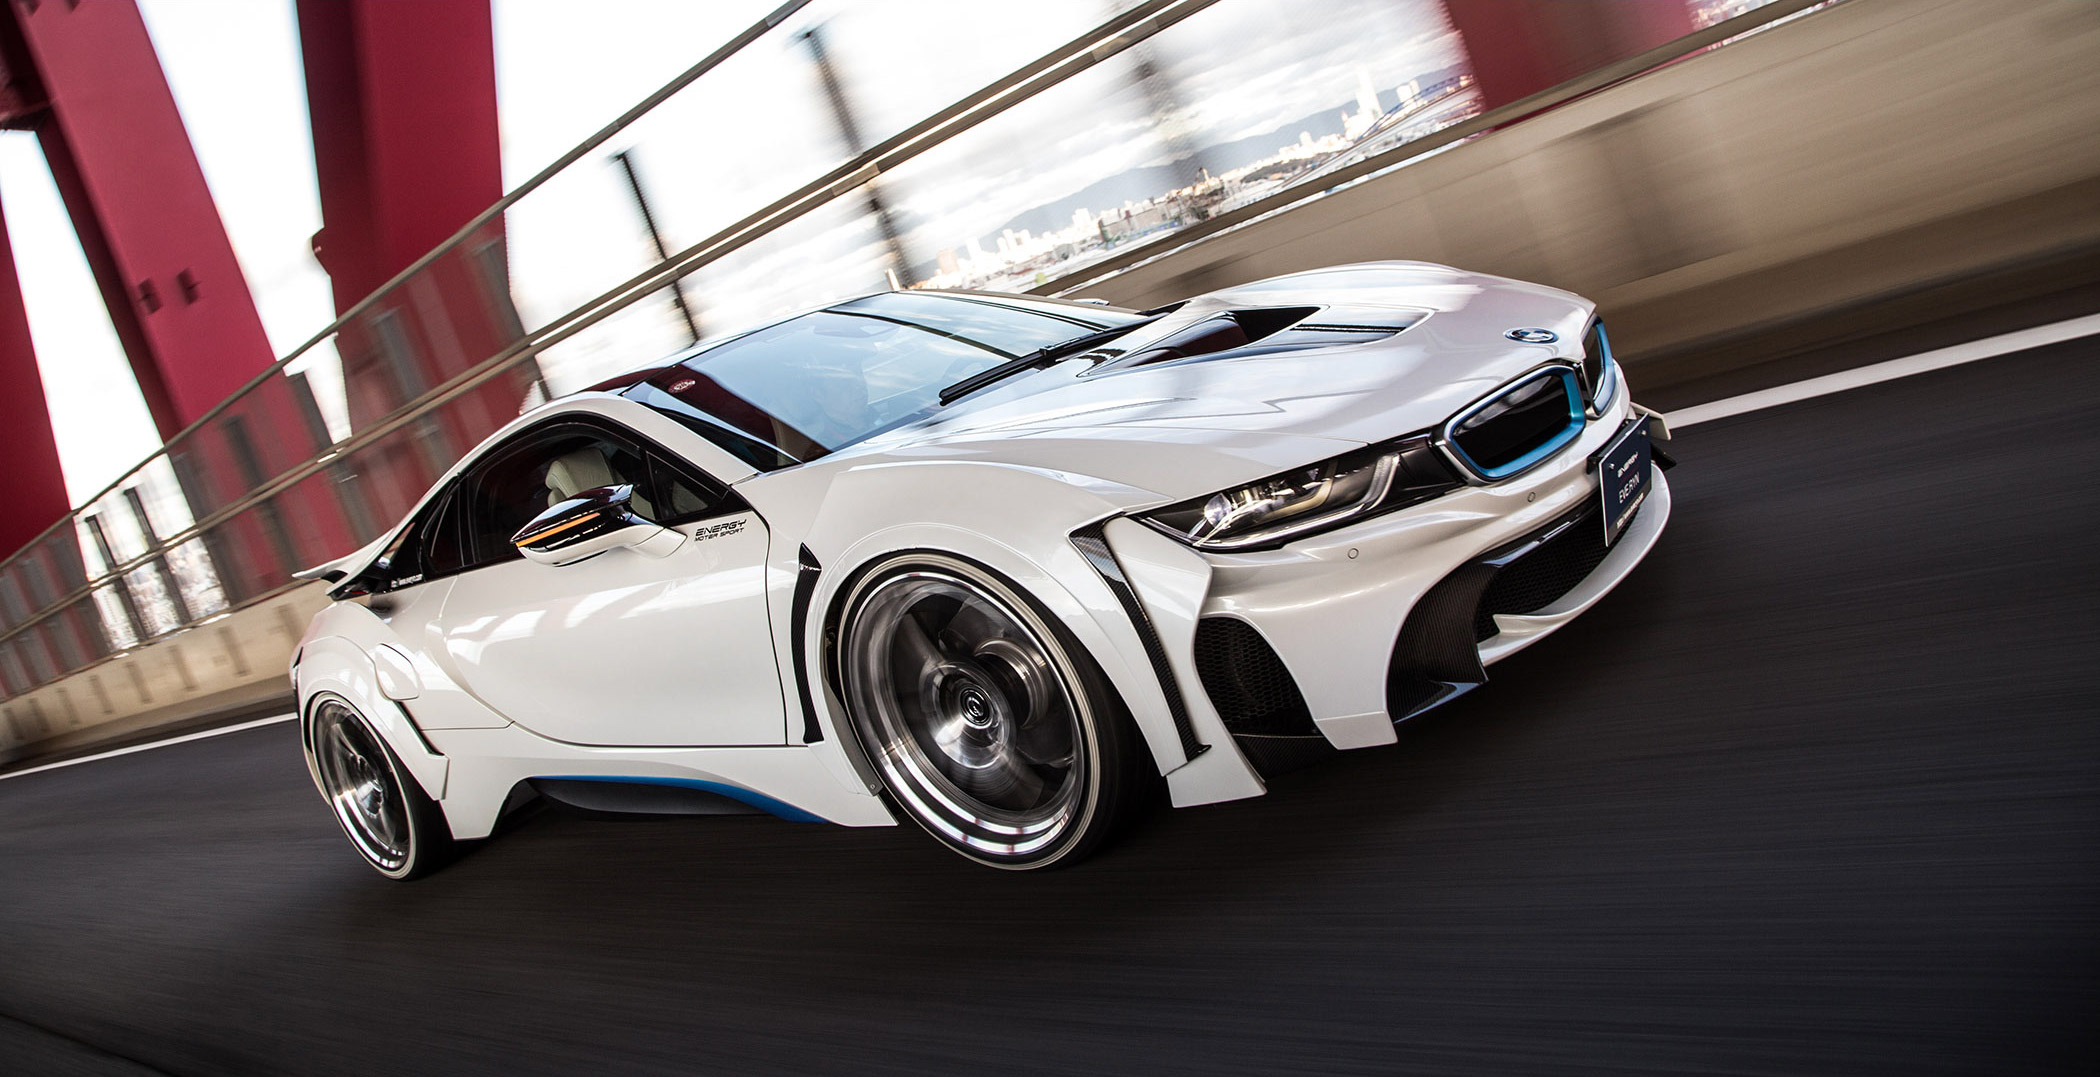 BMW i8 receives Energy Motor Sport bodykit package Image 419187